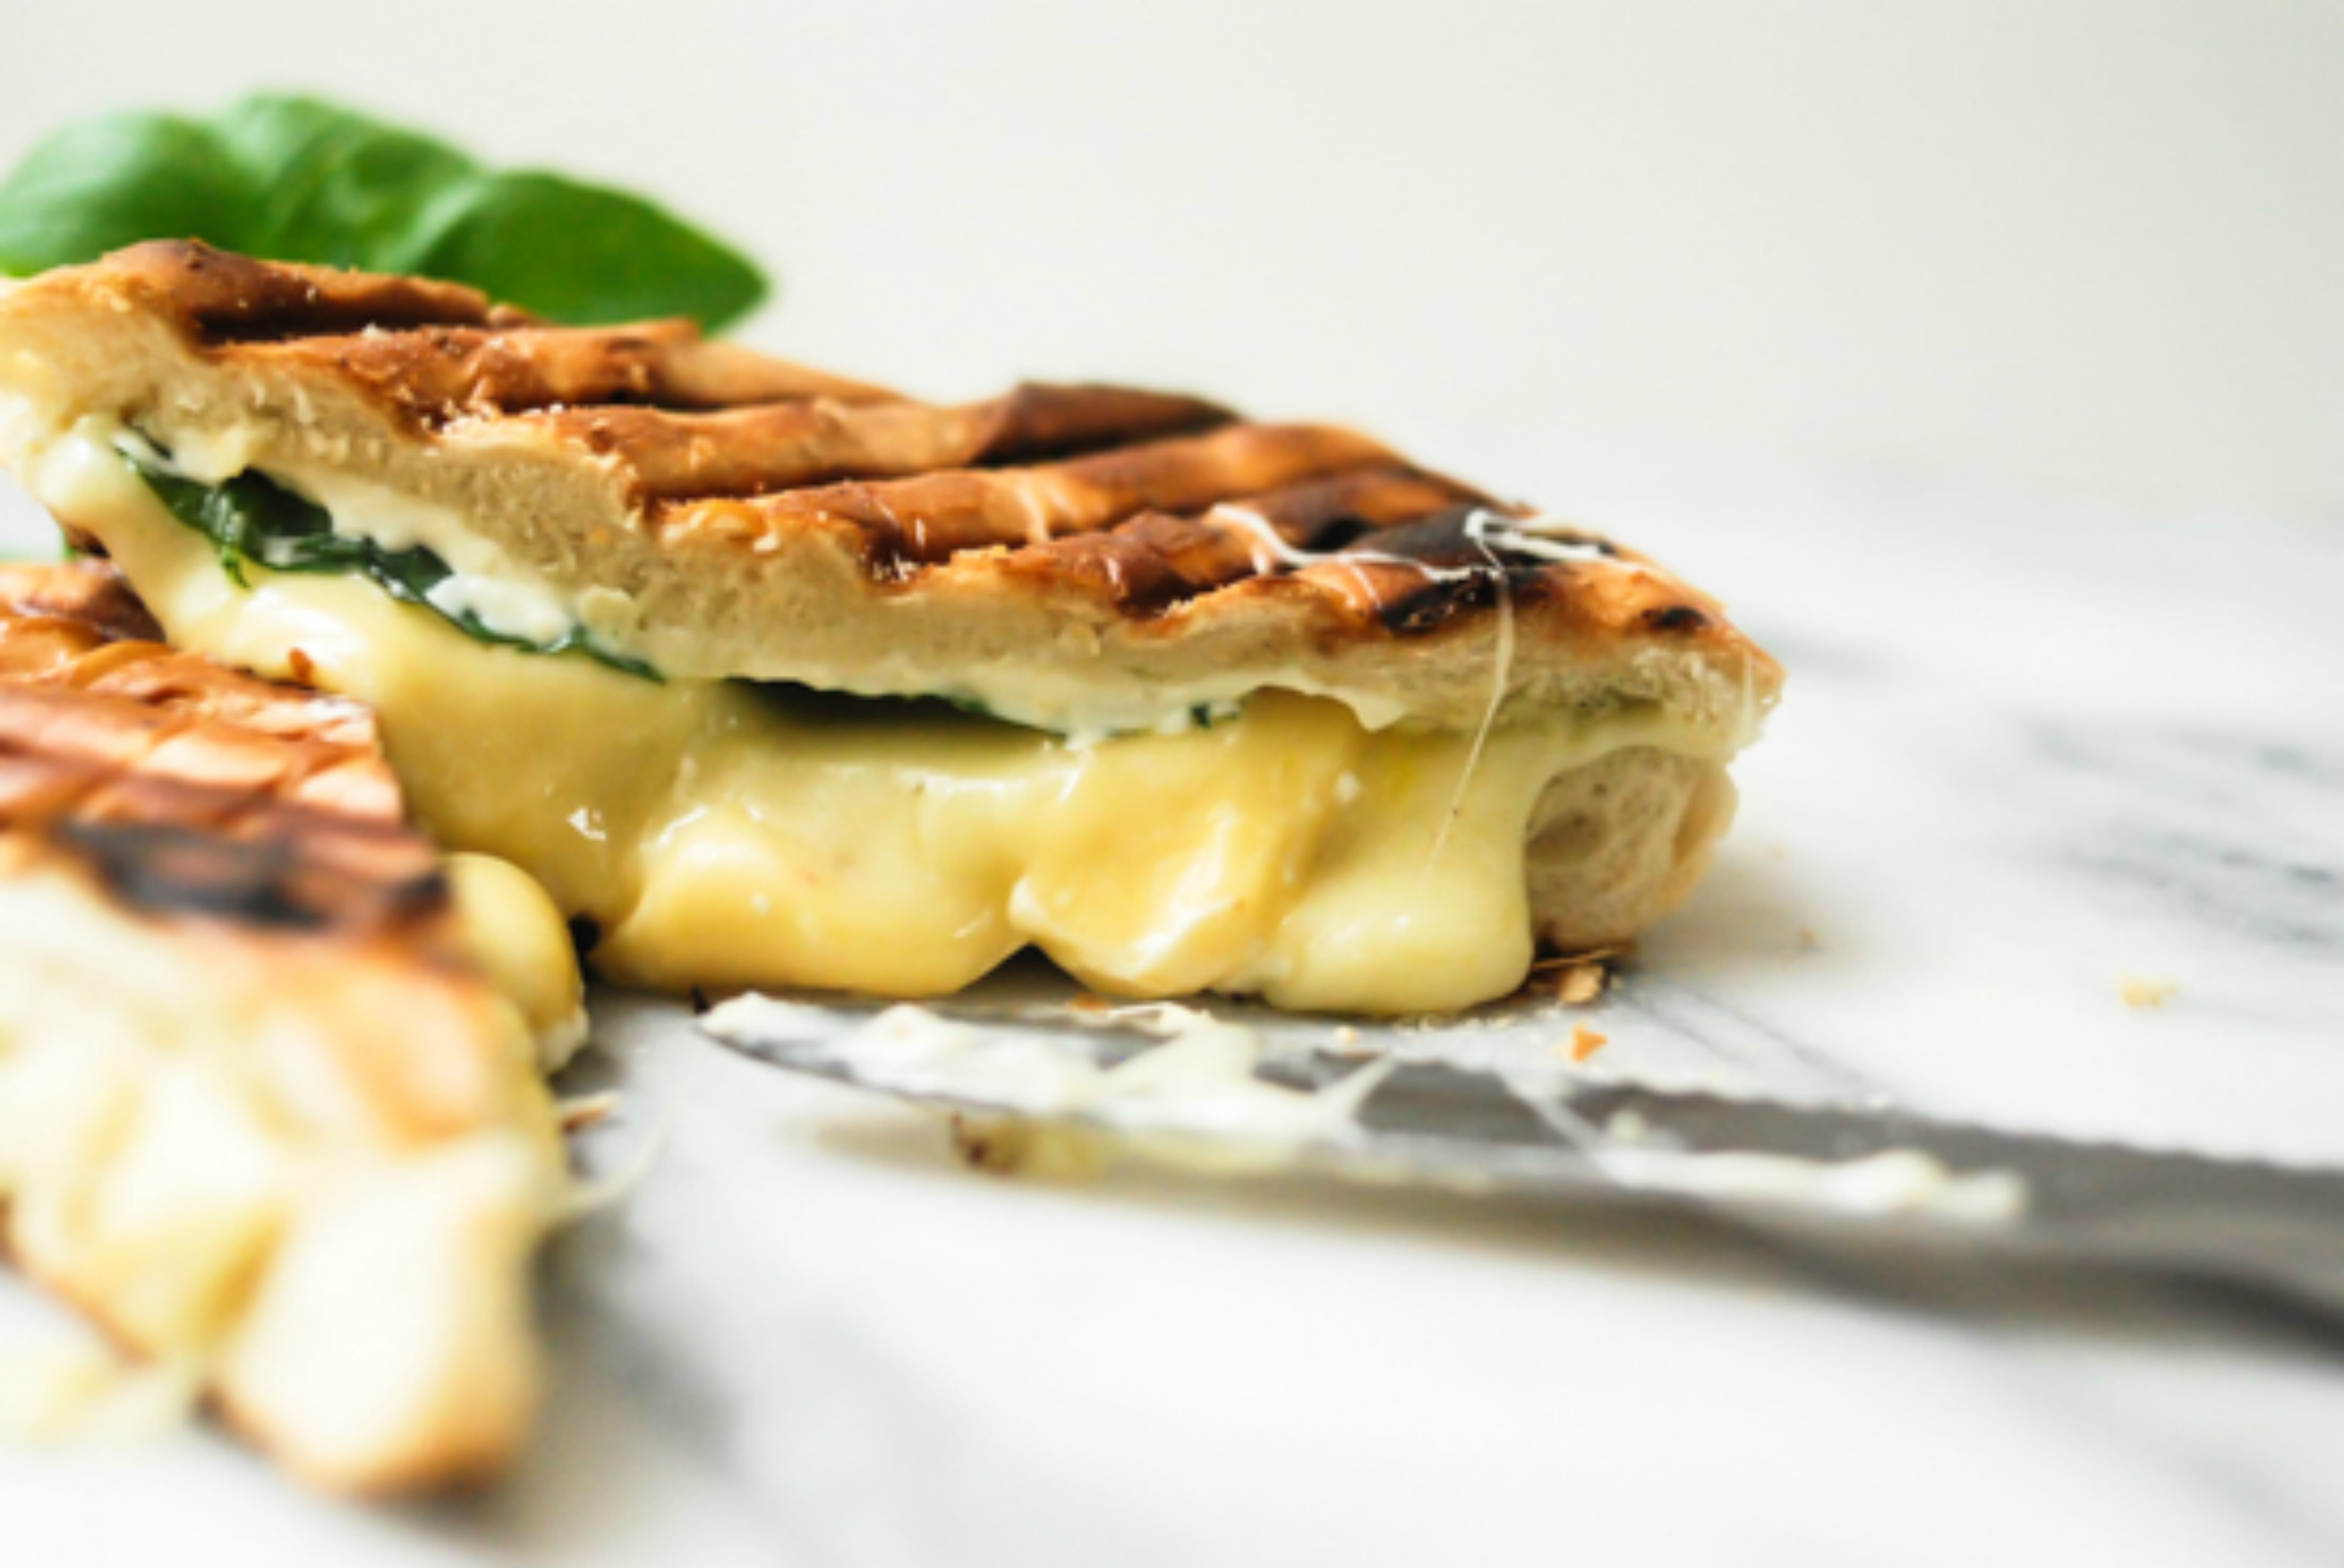 Grilled Cheese Panini with basil